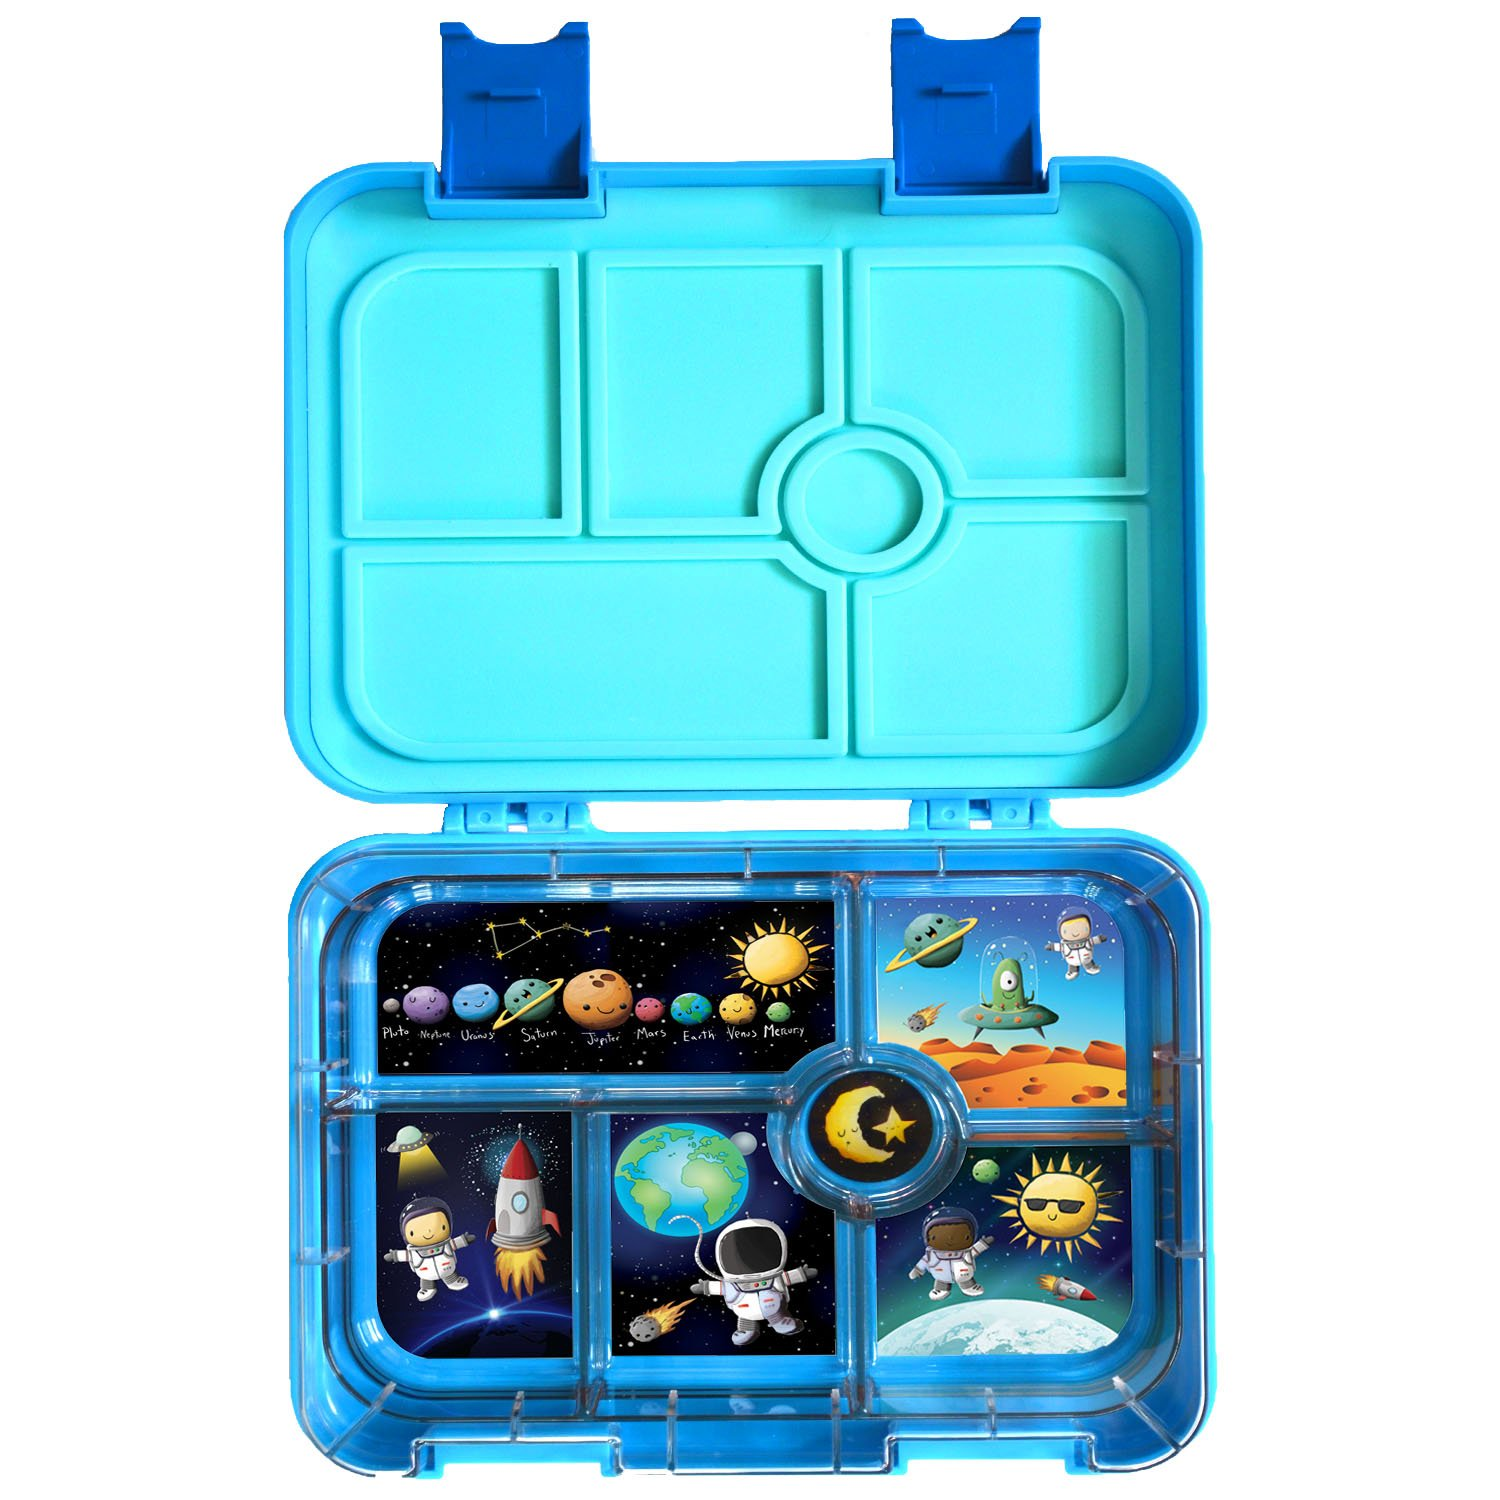 Gooj Kids Leak Proof Lunchbox With 6 Compartments Bpa Free And Dishwasher Safe Lunch Box Reusable Bento Box For Boys And Girls Amazon Ca Home